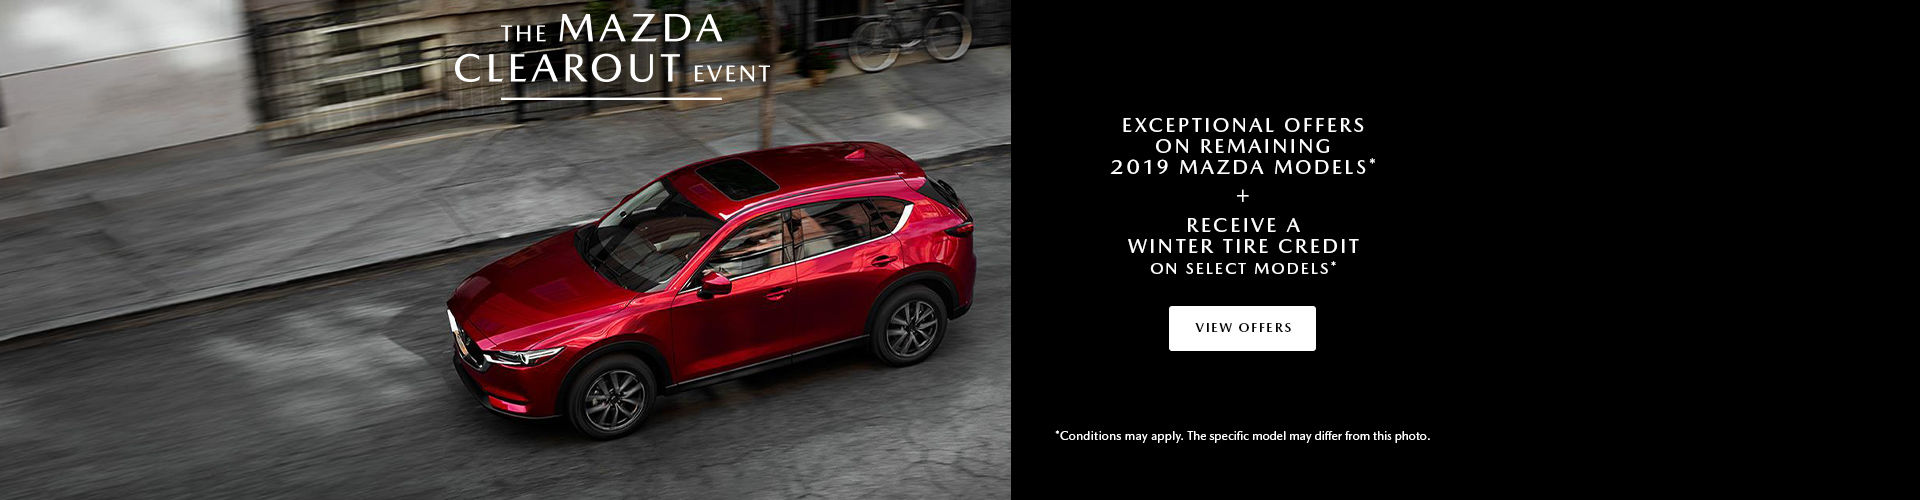 Mazda Clearout Sales Event